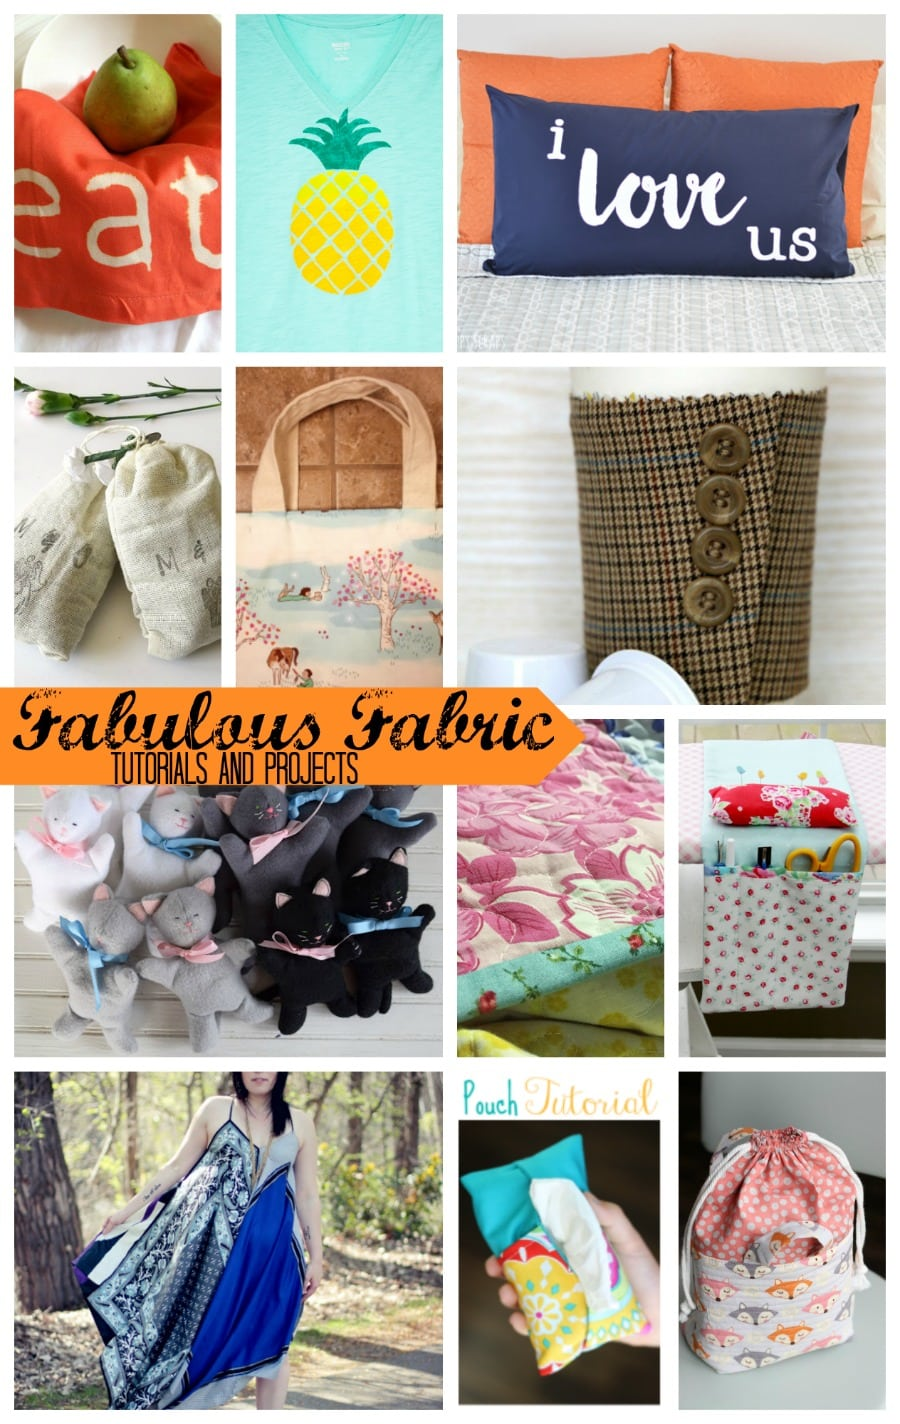 fabulous Fabric Projects and tutorials